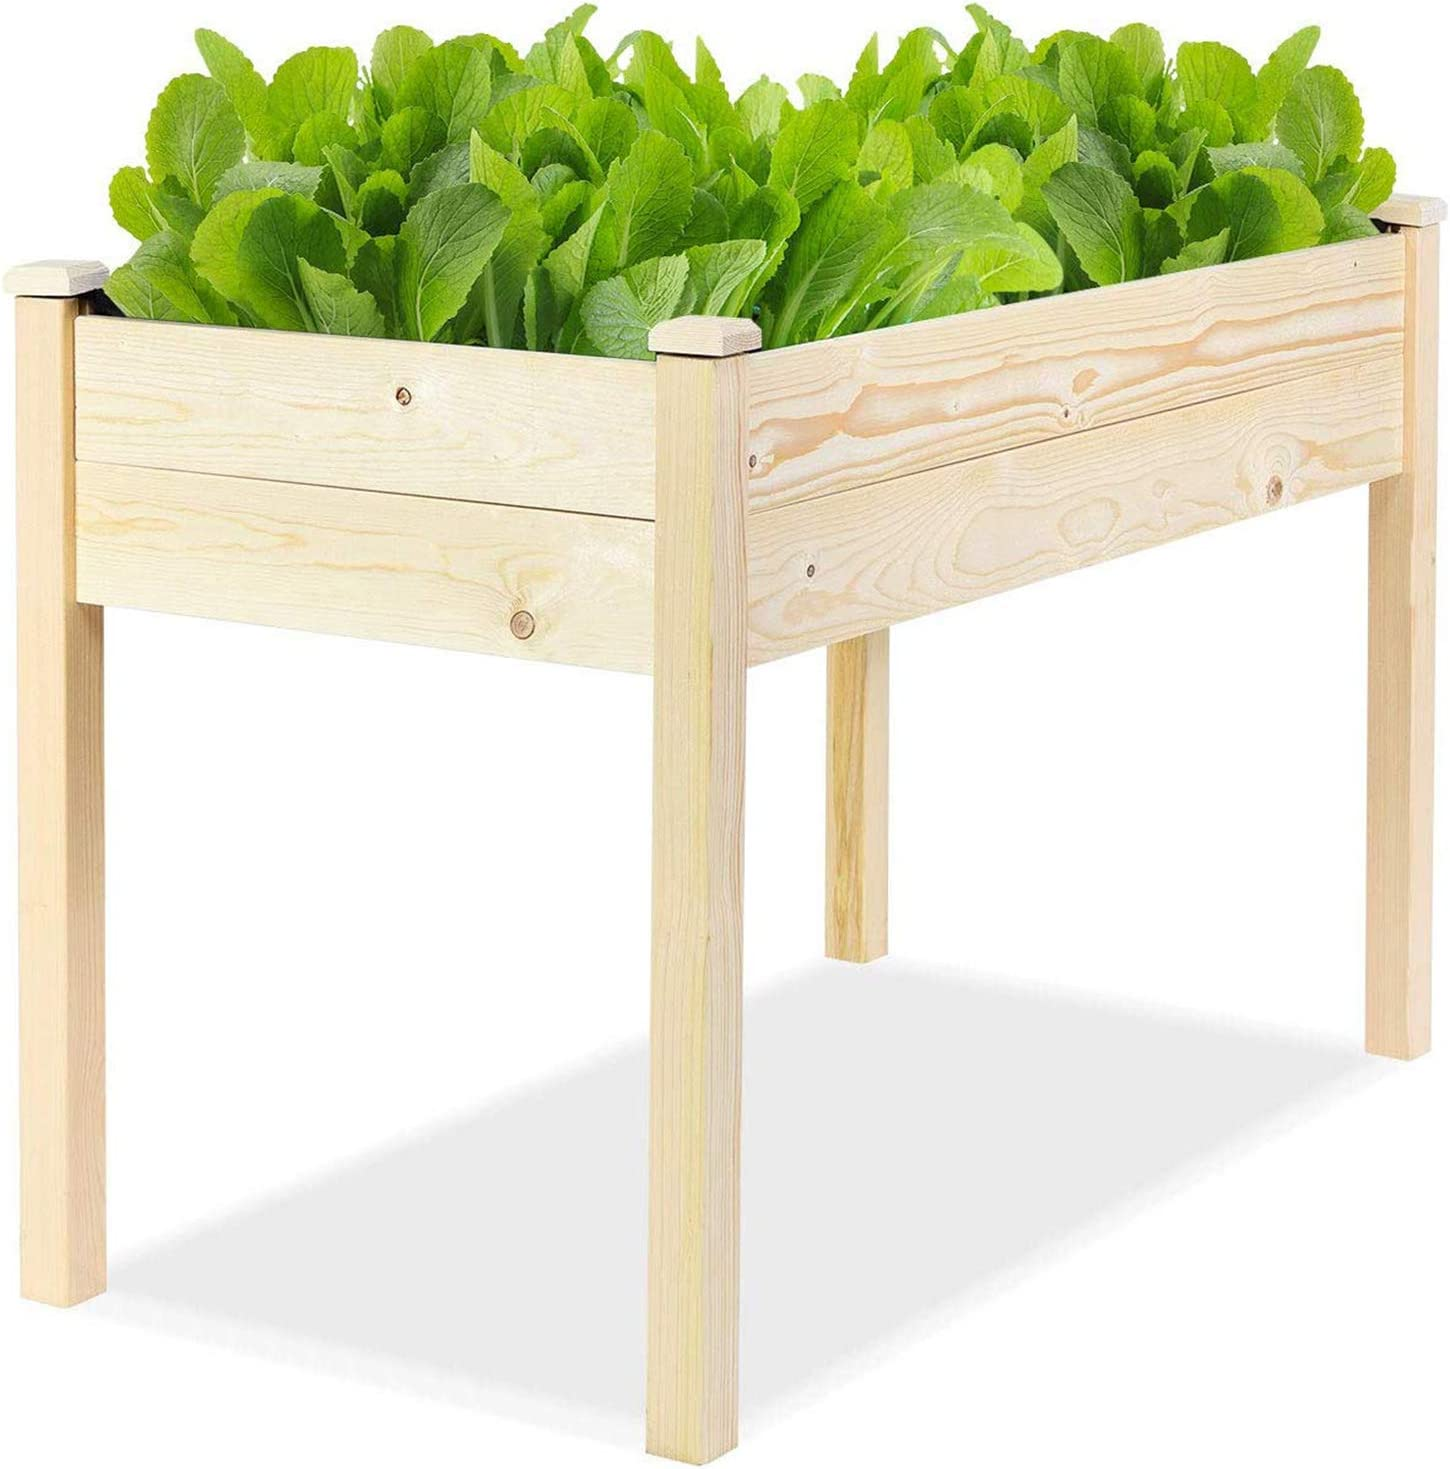 Incbruce 4ft Wooden Raised Garden Bed Planter, No-Bolt Assembly Elevated Flower Bed Boxes Kit for Vegetable Flower Herb Gardening, Natural